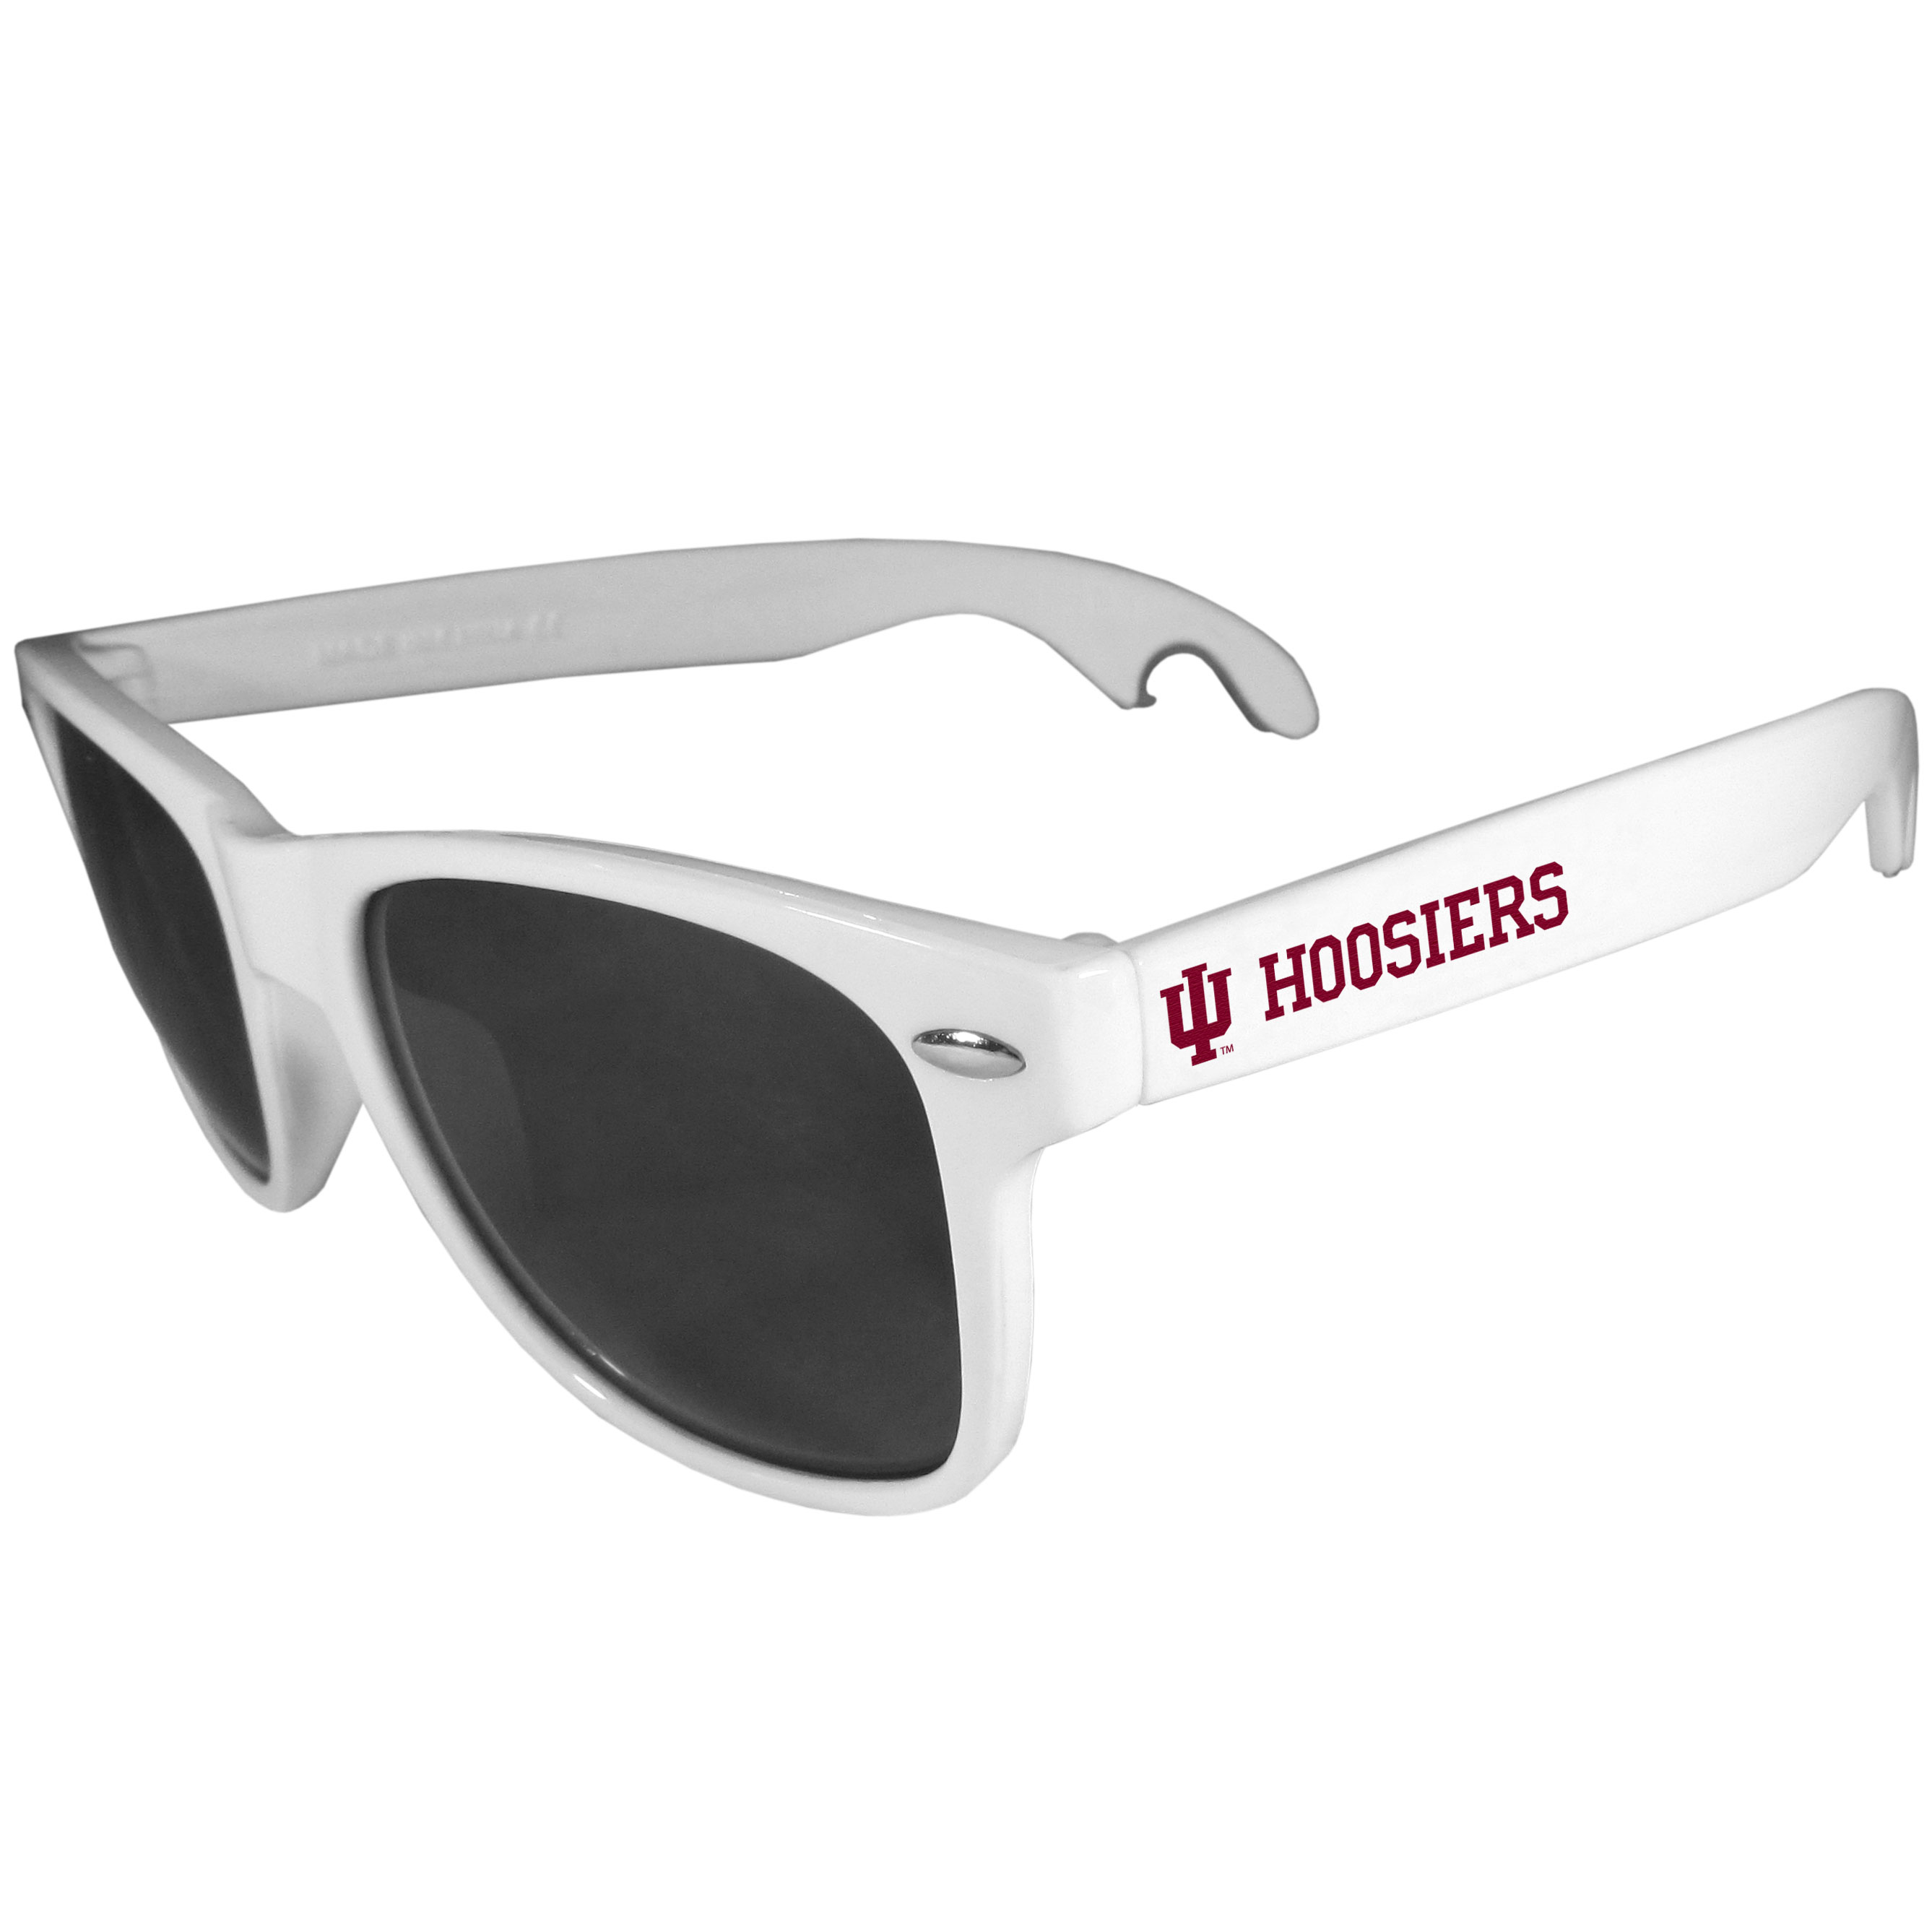 Indiana Hoosiers Beachfarer Bottle Opener Sunglasses, White - Seriously, these sunglasses open bottles! Keep the party going with these amazing Indiana Hoosiers bottle opener sunglasses. The stylish retro frames feature team designs on the arms and functional bottle openers on the end of the arms. Whether you are at the beach or having a backyard BBQ on game day, these shades will keep your eyes protected with 100% UVA/UVB protection and keep you hydrated with the handy bottle opener arms.